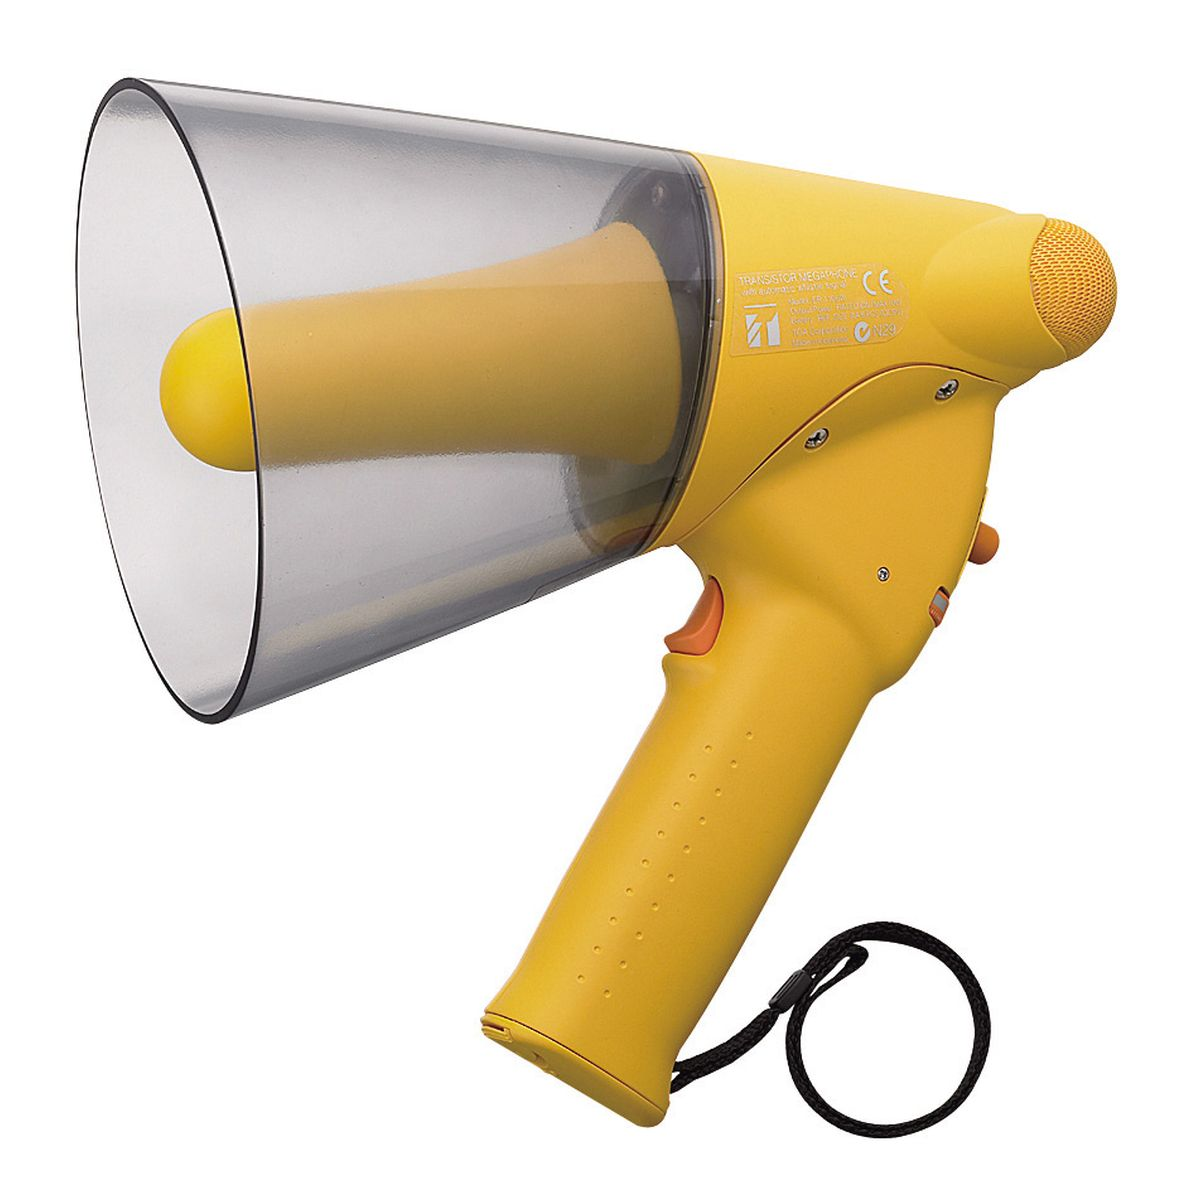 6W SPLASH PROOF MEGAPHONE,<br>WHISTLE SIGNAL